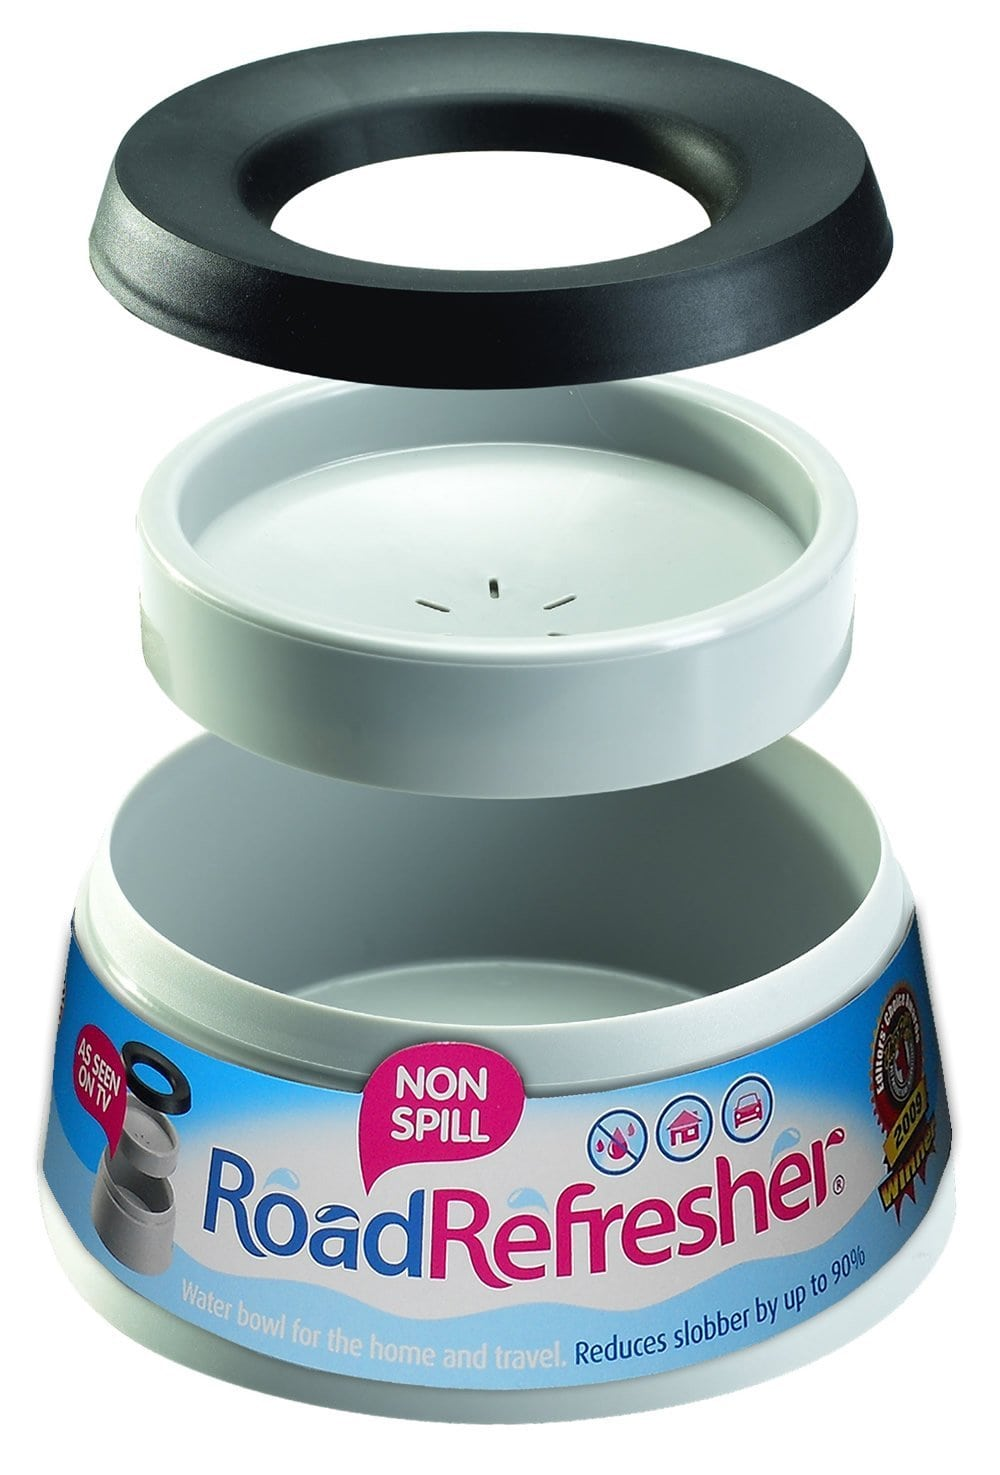 Car-Related-Gift-Idea-2015-DogBowl-min